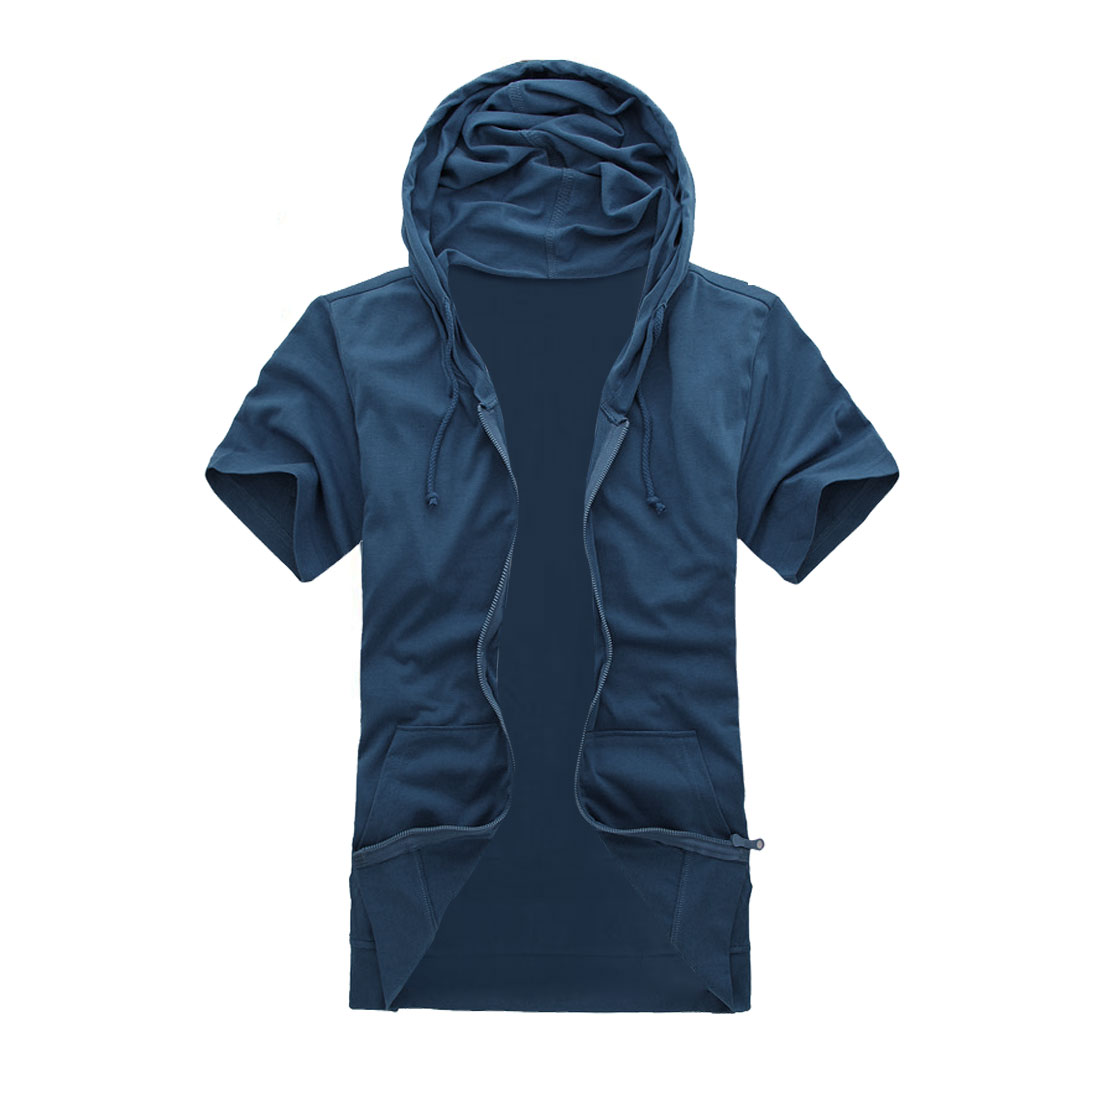 Man Solid Color Short Sleeves Leisure Stylish Navy Blue Hoodie M